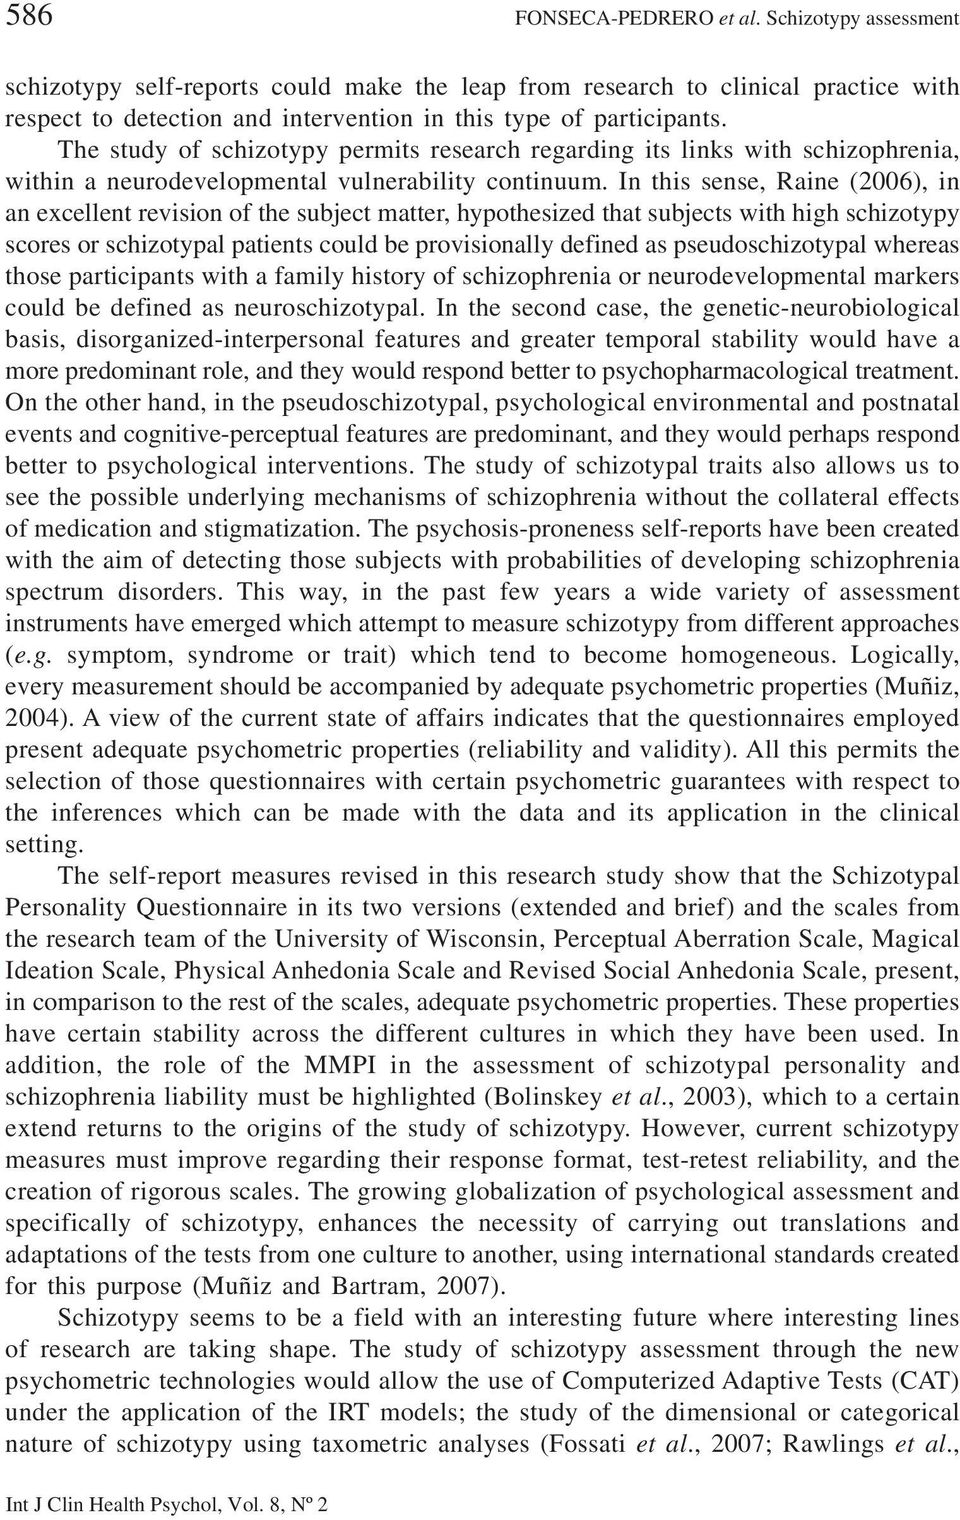 In this sense, Raine (2006), in an excellent revision of the subject matter, hypothesized that subjects with high schizotypy scores or schizotypal patients could be provisionally defined as